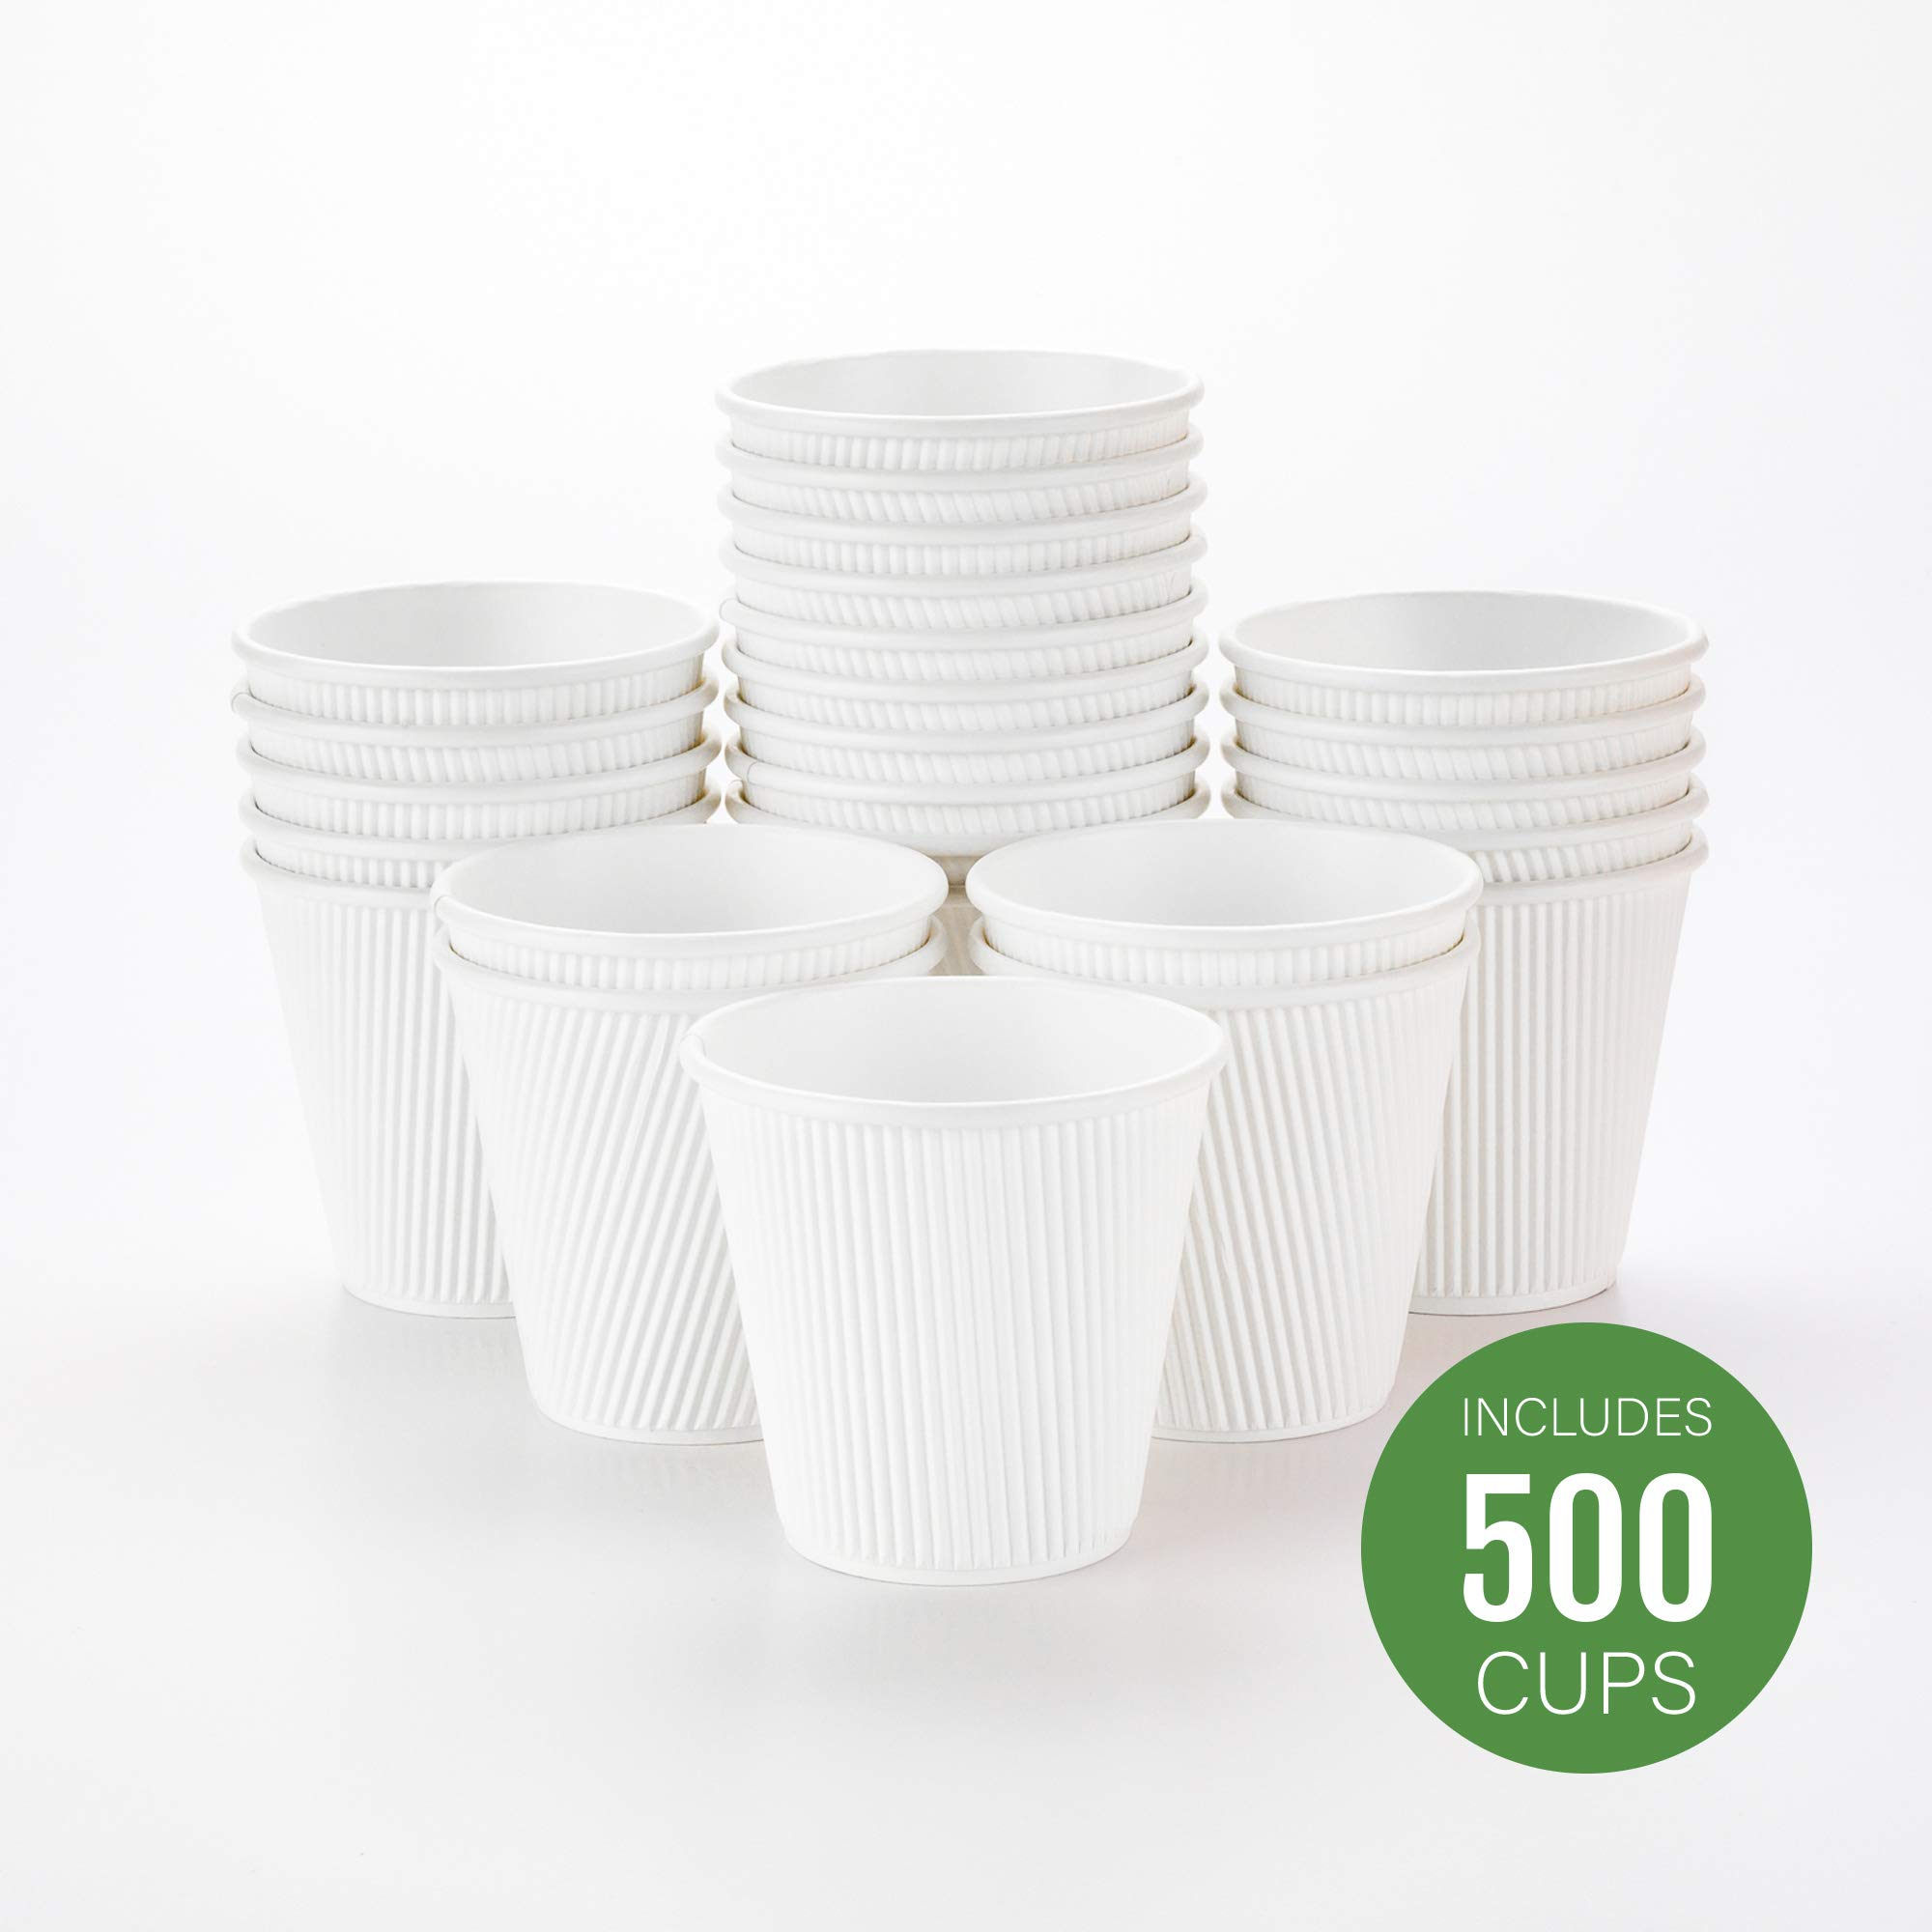 500-CT Disposable White 8-OZ Hot Beverage Cups with Ripple Wall Design: No Need for Sleeves - Perfect for Cafes - Eco-Friendly Recyclable Paper - Insulated - Wholesale Takeout Coffee Cup